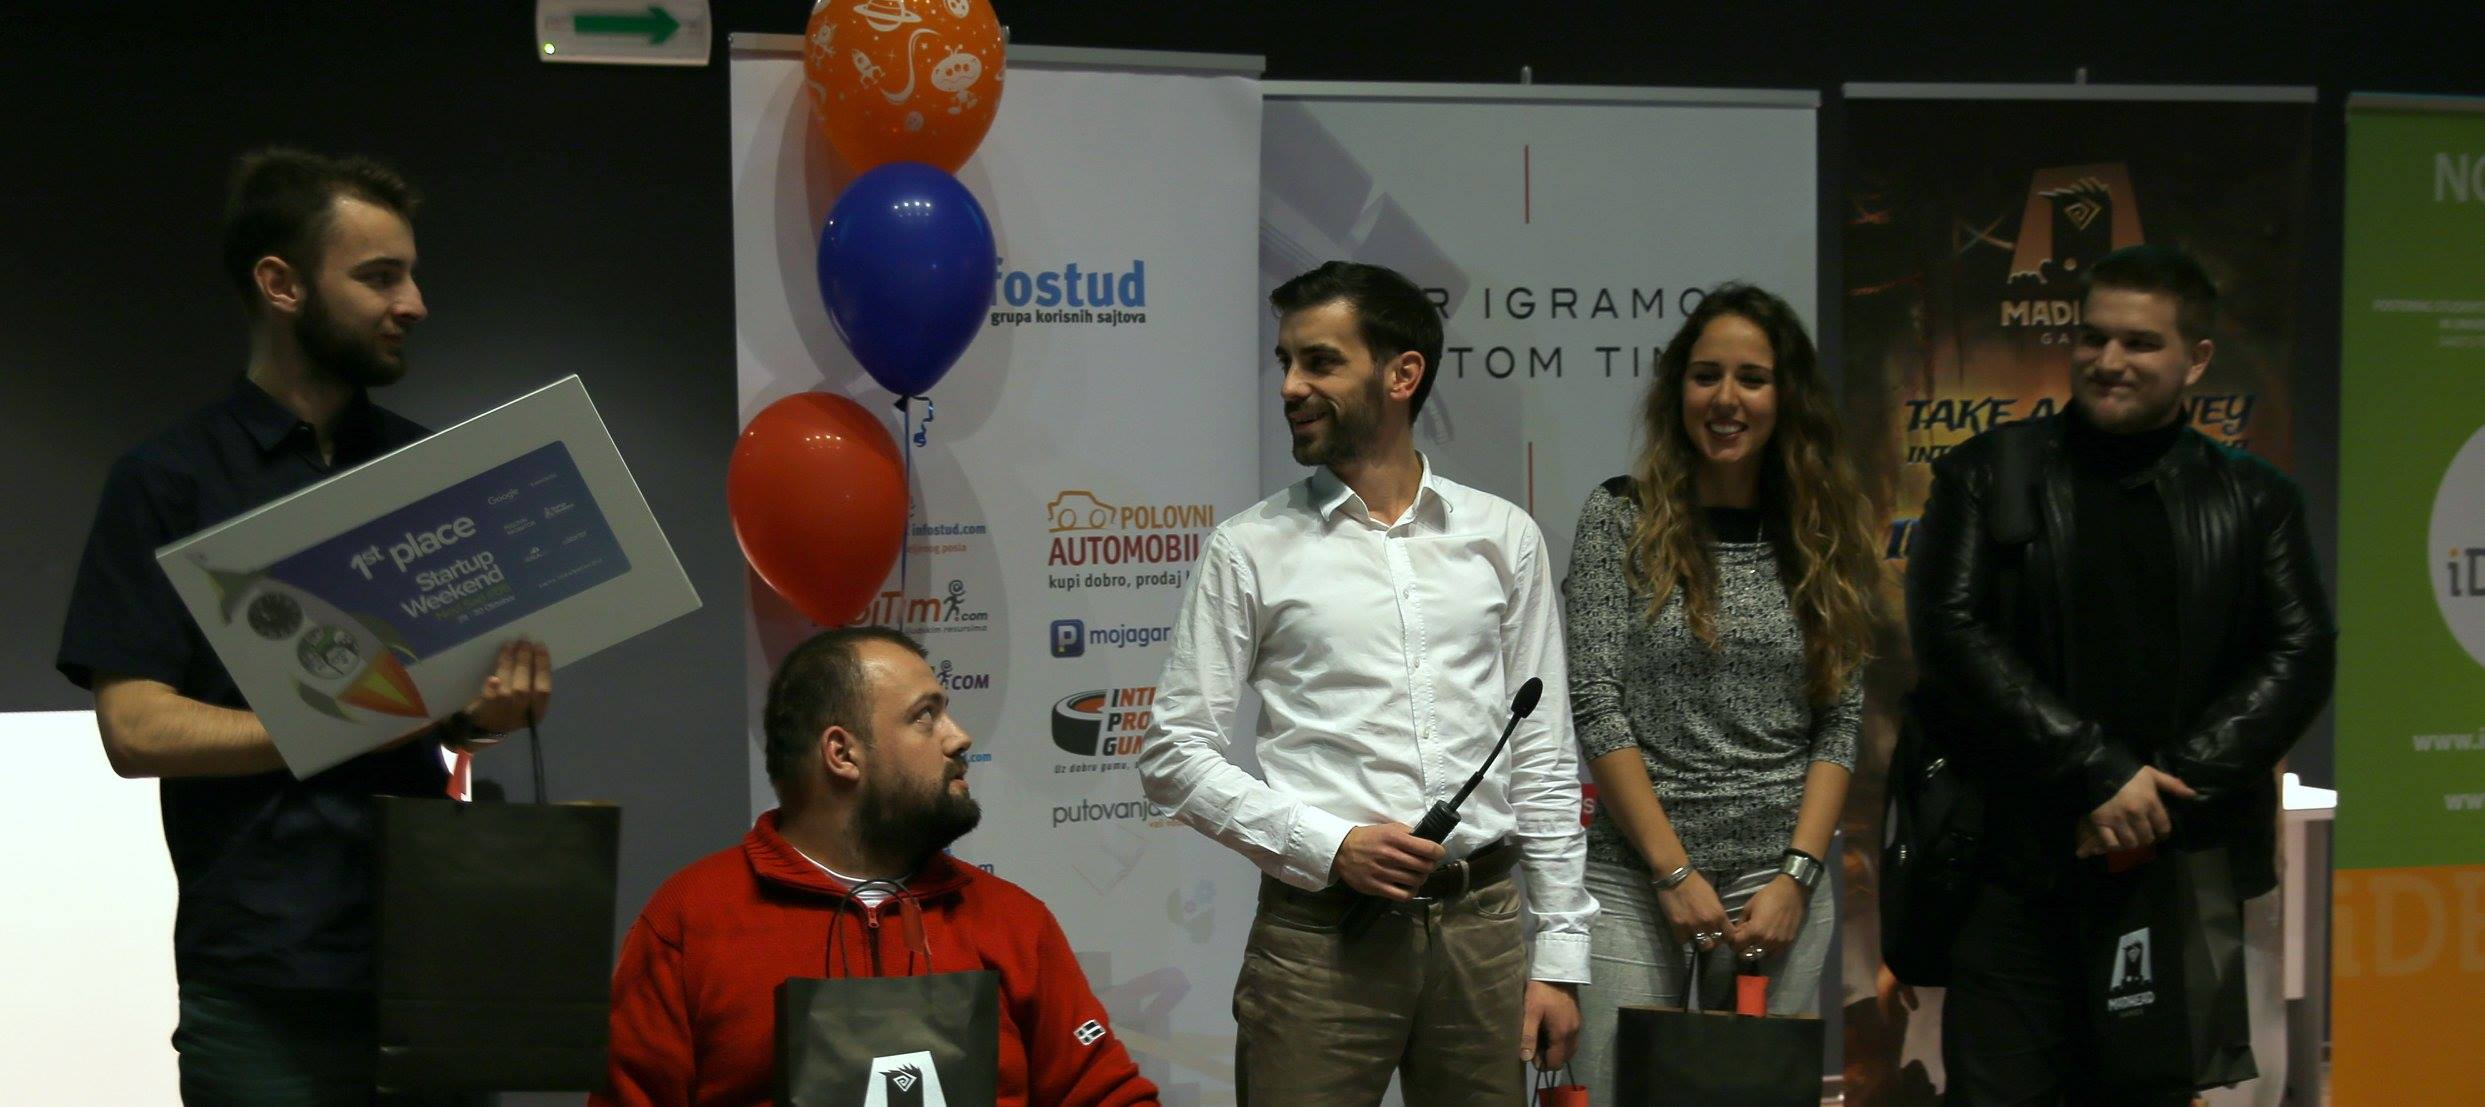 Blog 3 Startup weekend 1st place